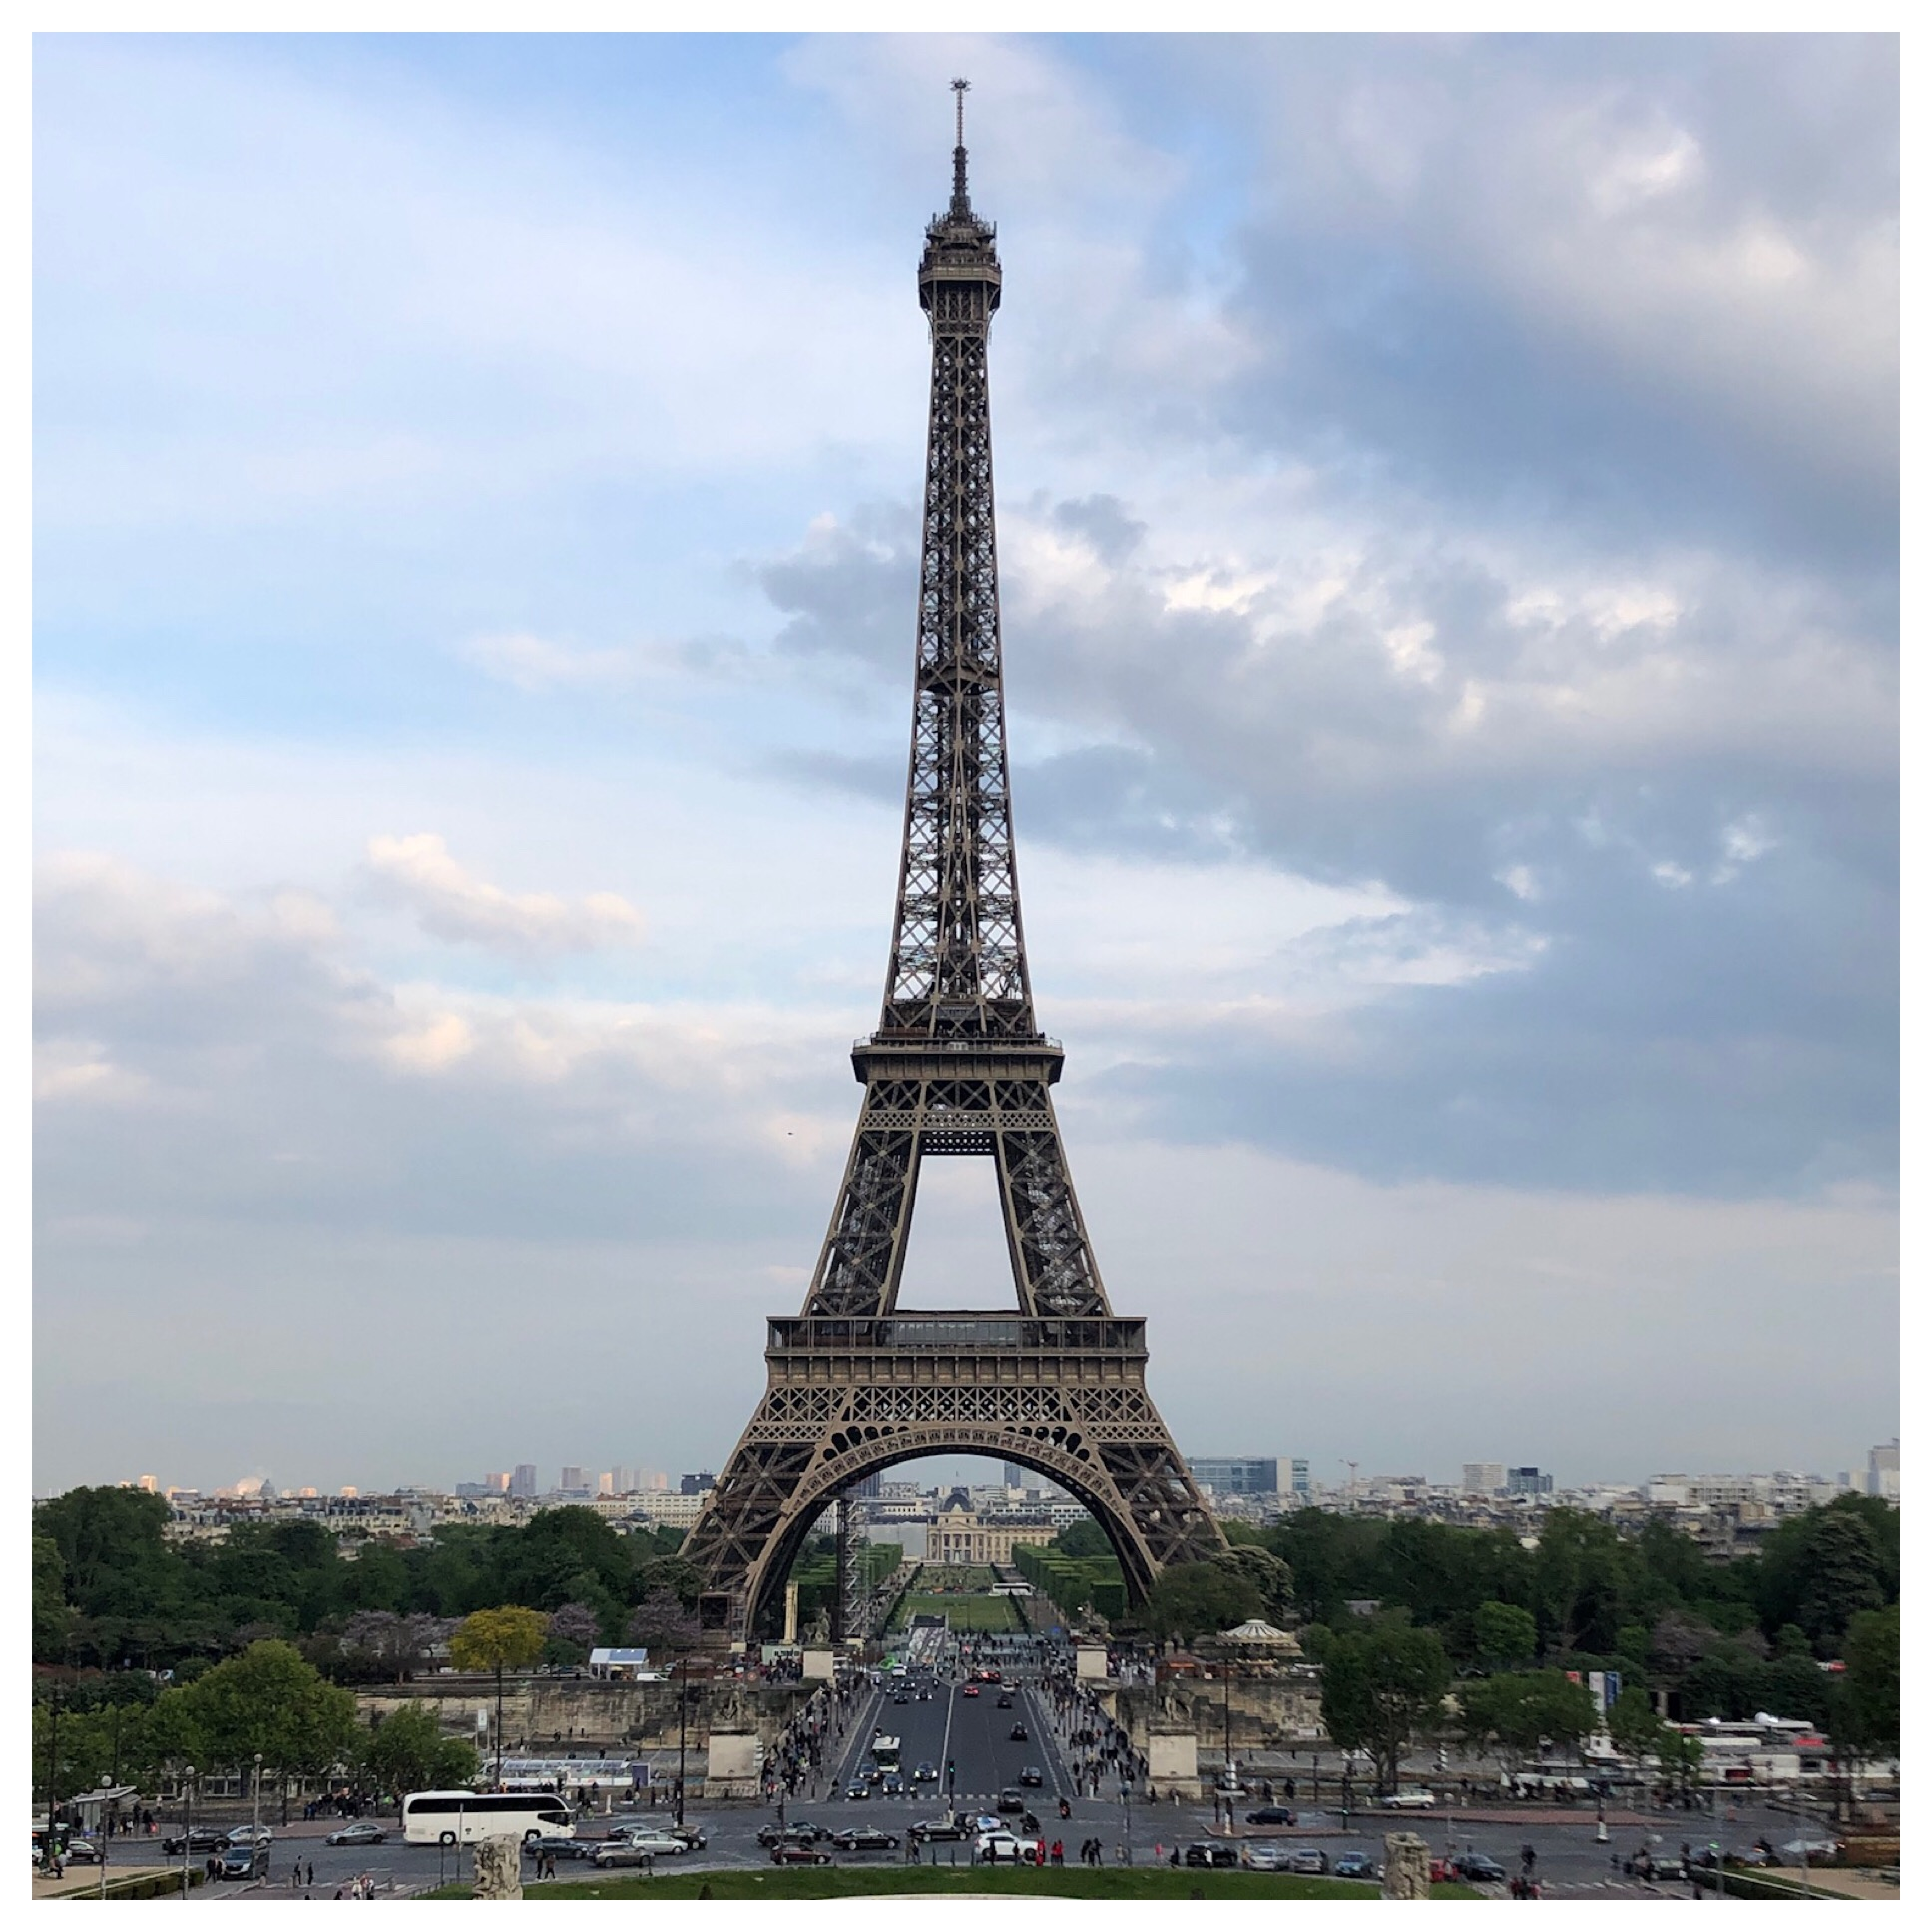 Our view from Place du Trocadero. Many would say the perfect vantage point.